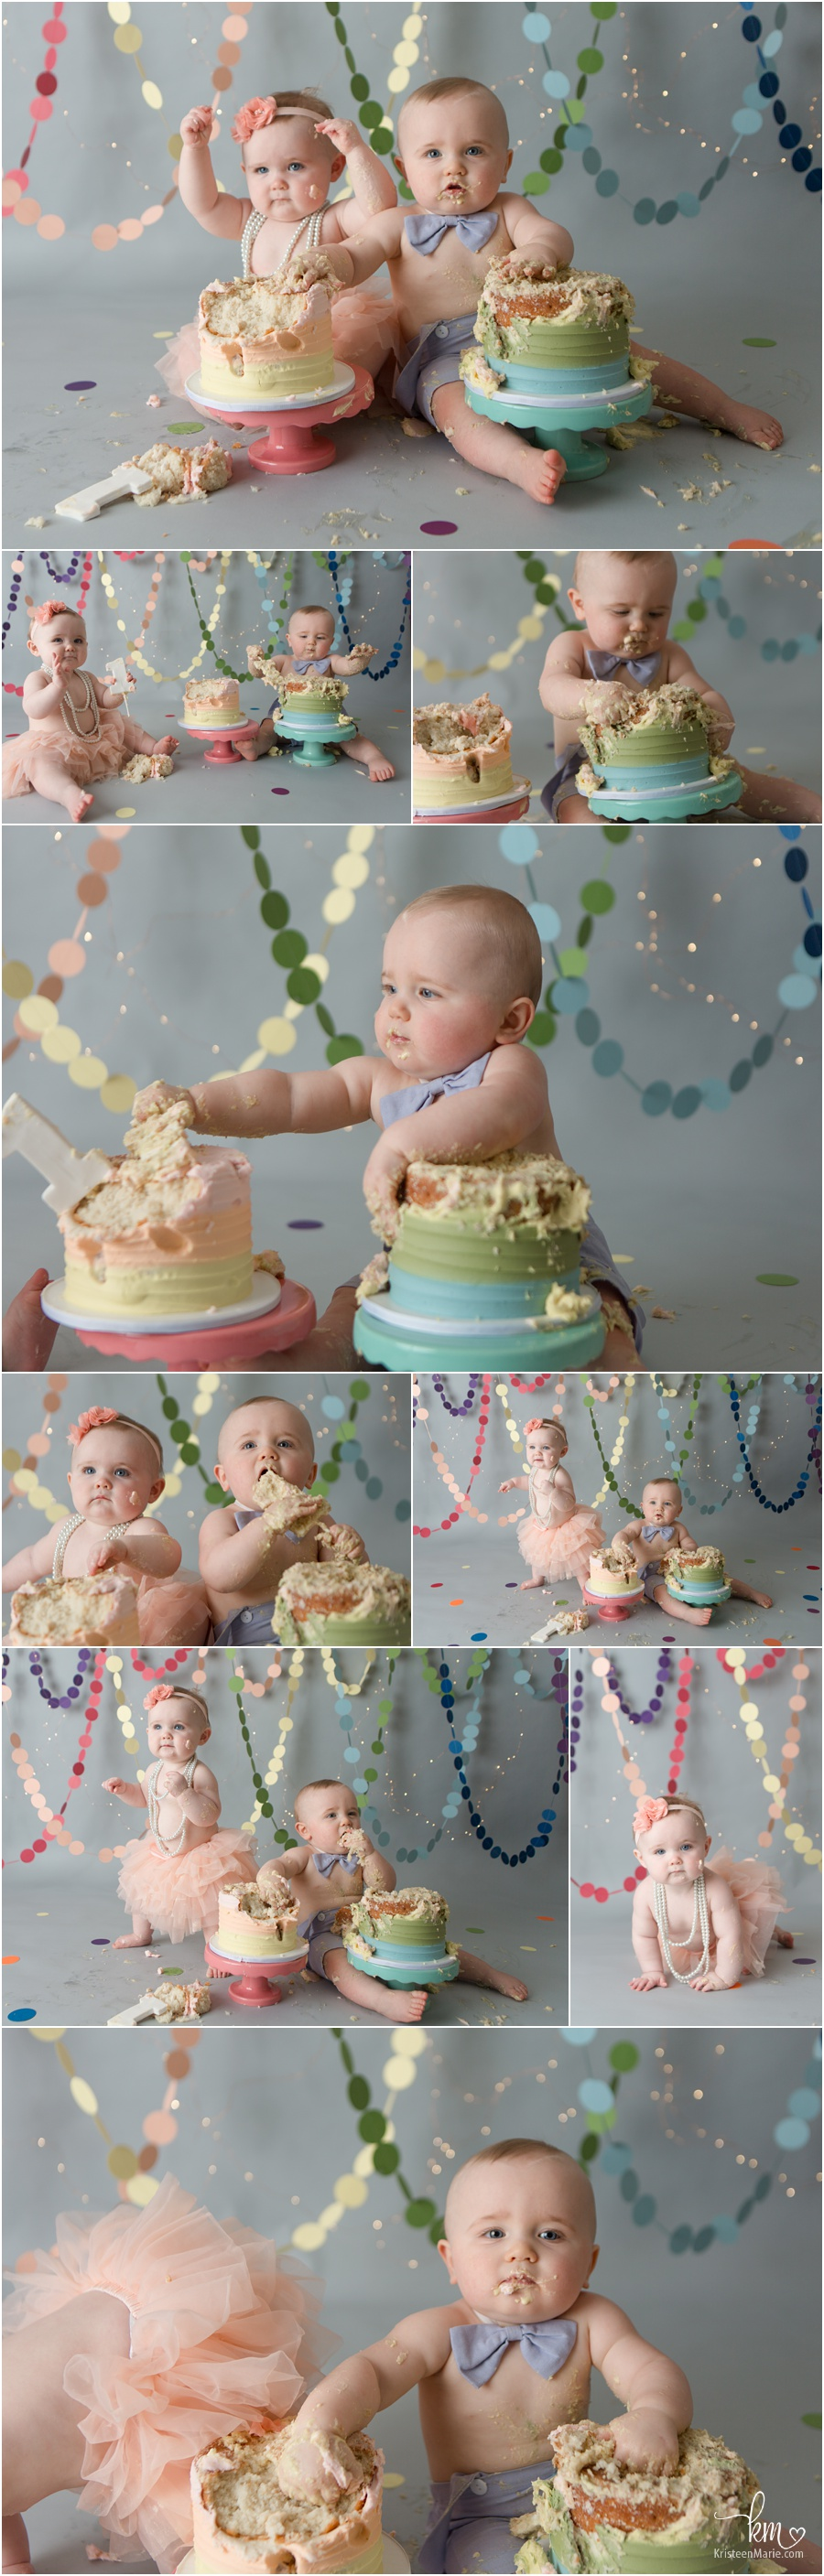 twin boy and girl 1st birthday cake smash photography rainbow themed